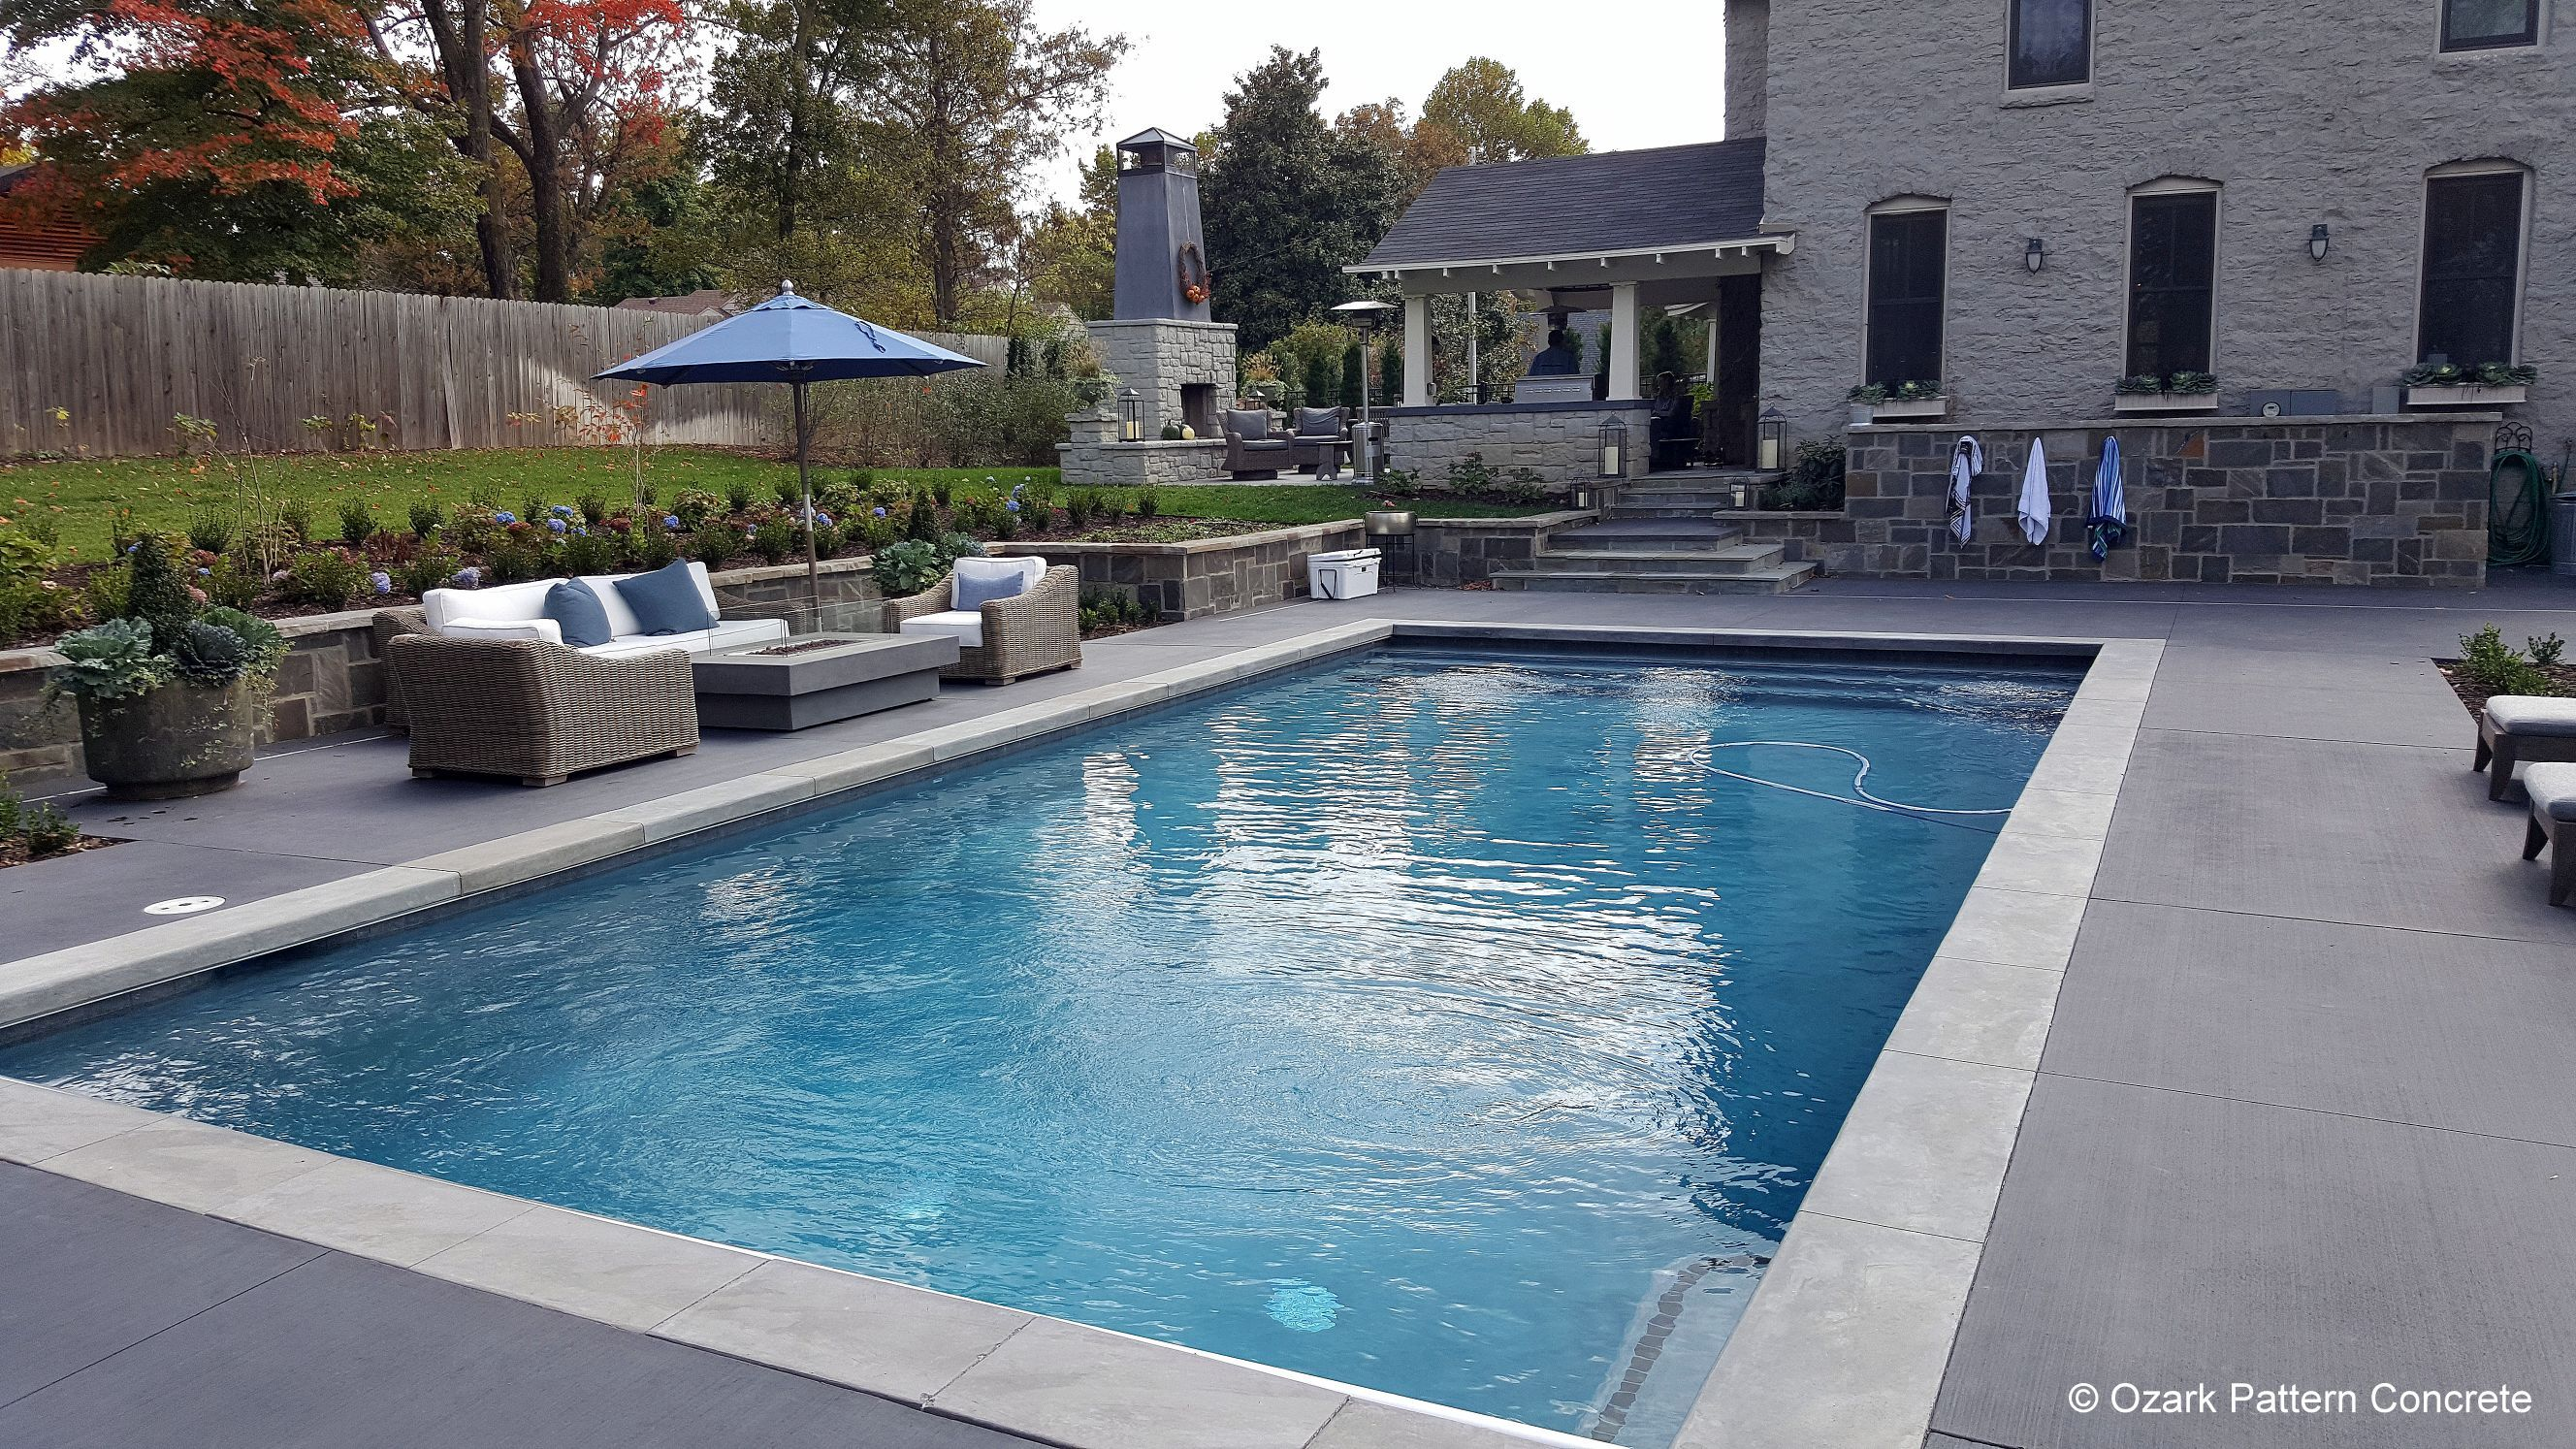 Colored Concrete Pool Deck with Contrasting Coping  Concrete pool